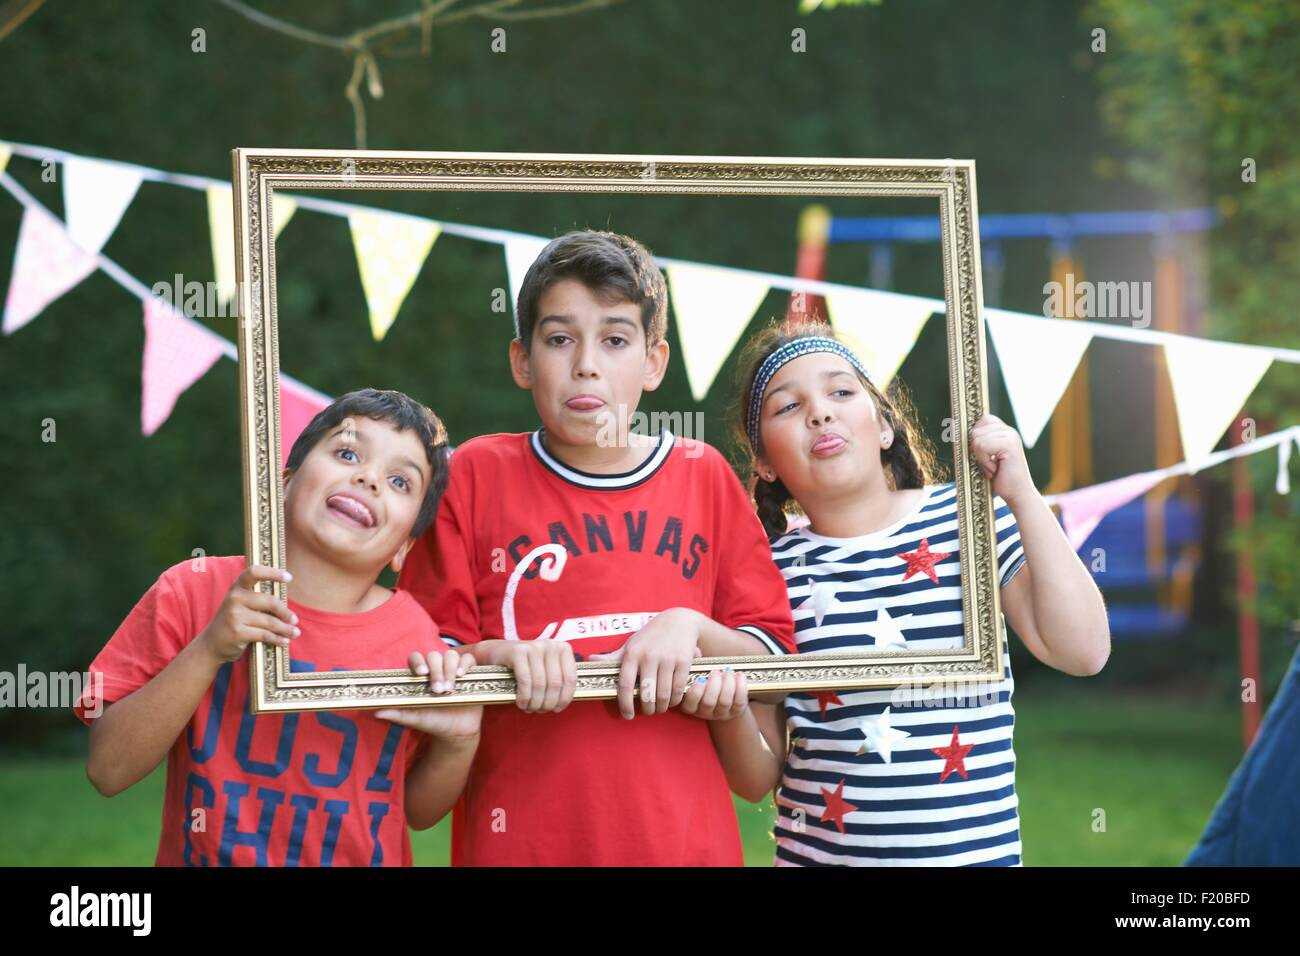 Three children looking through picture frame, sticking out tongues - Stock Image